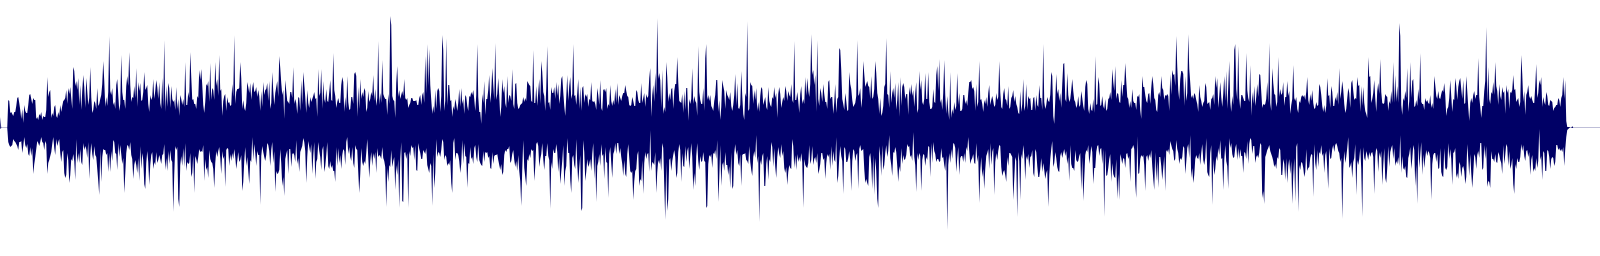 waveform of track #108769